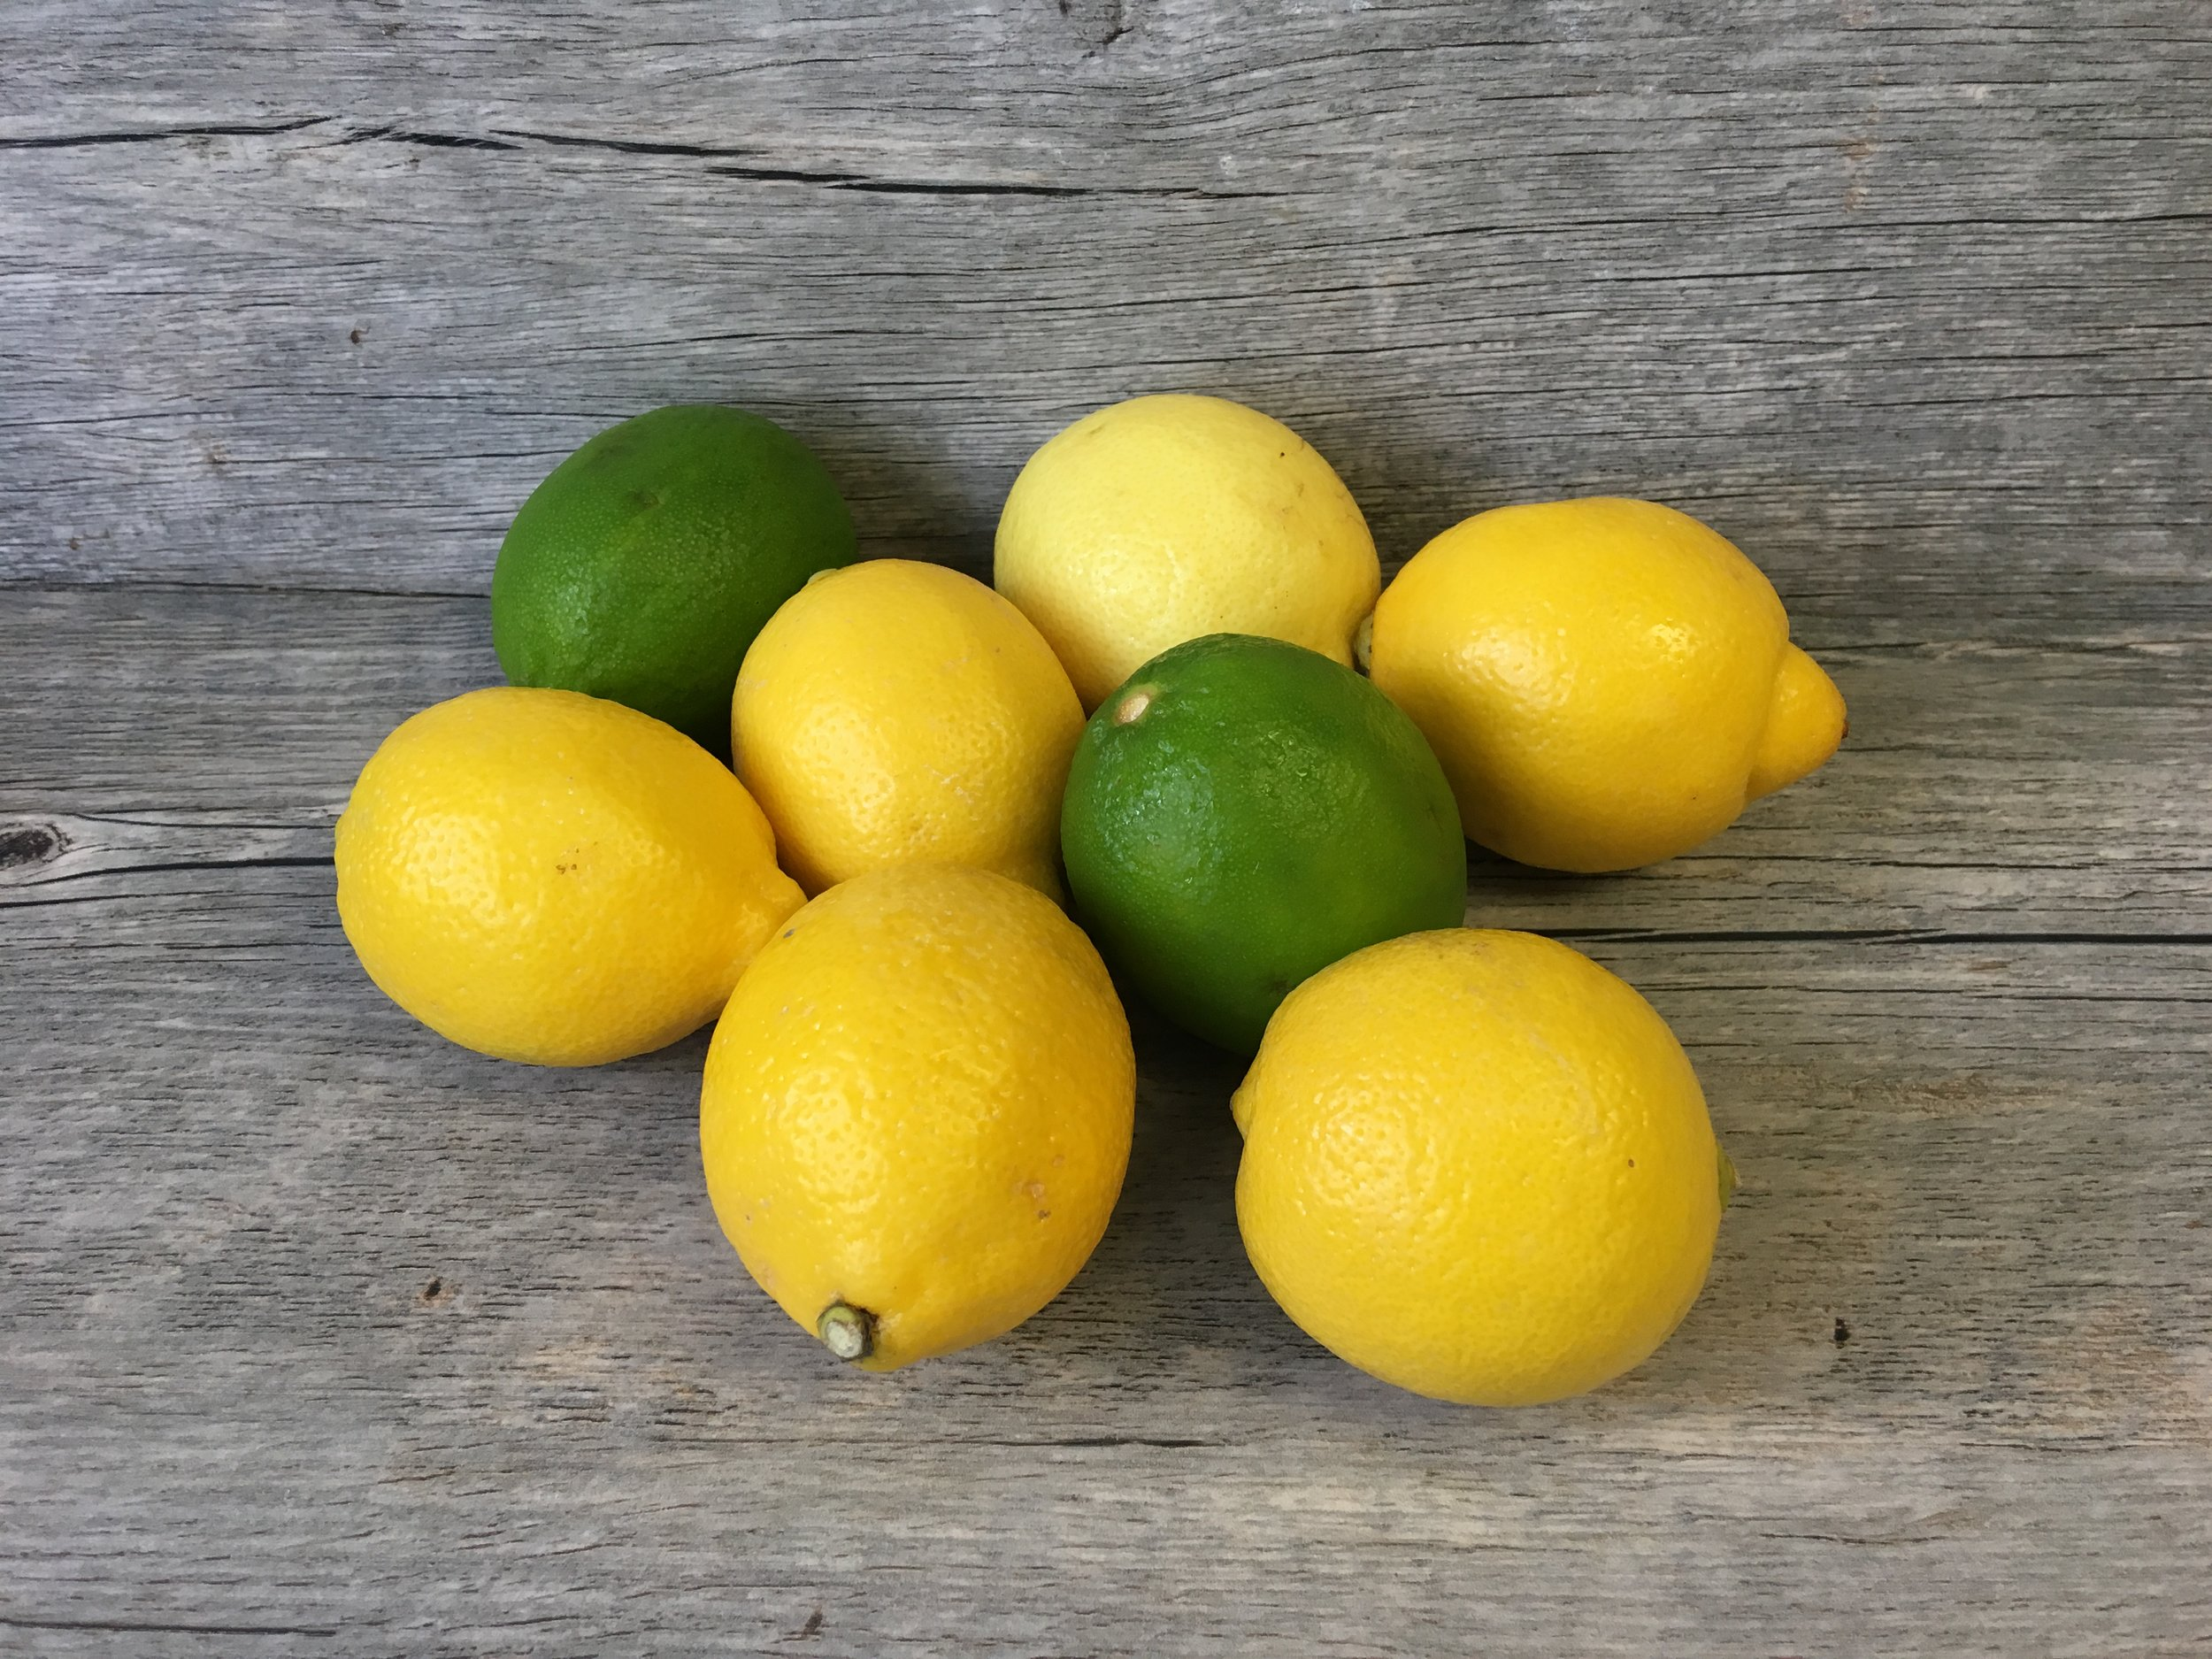 Citrus Fruit, such as Lemons and Limes, are amazingly good for you!